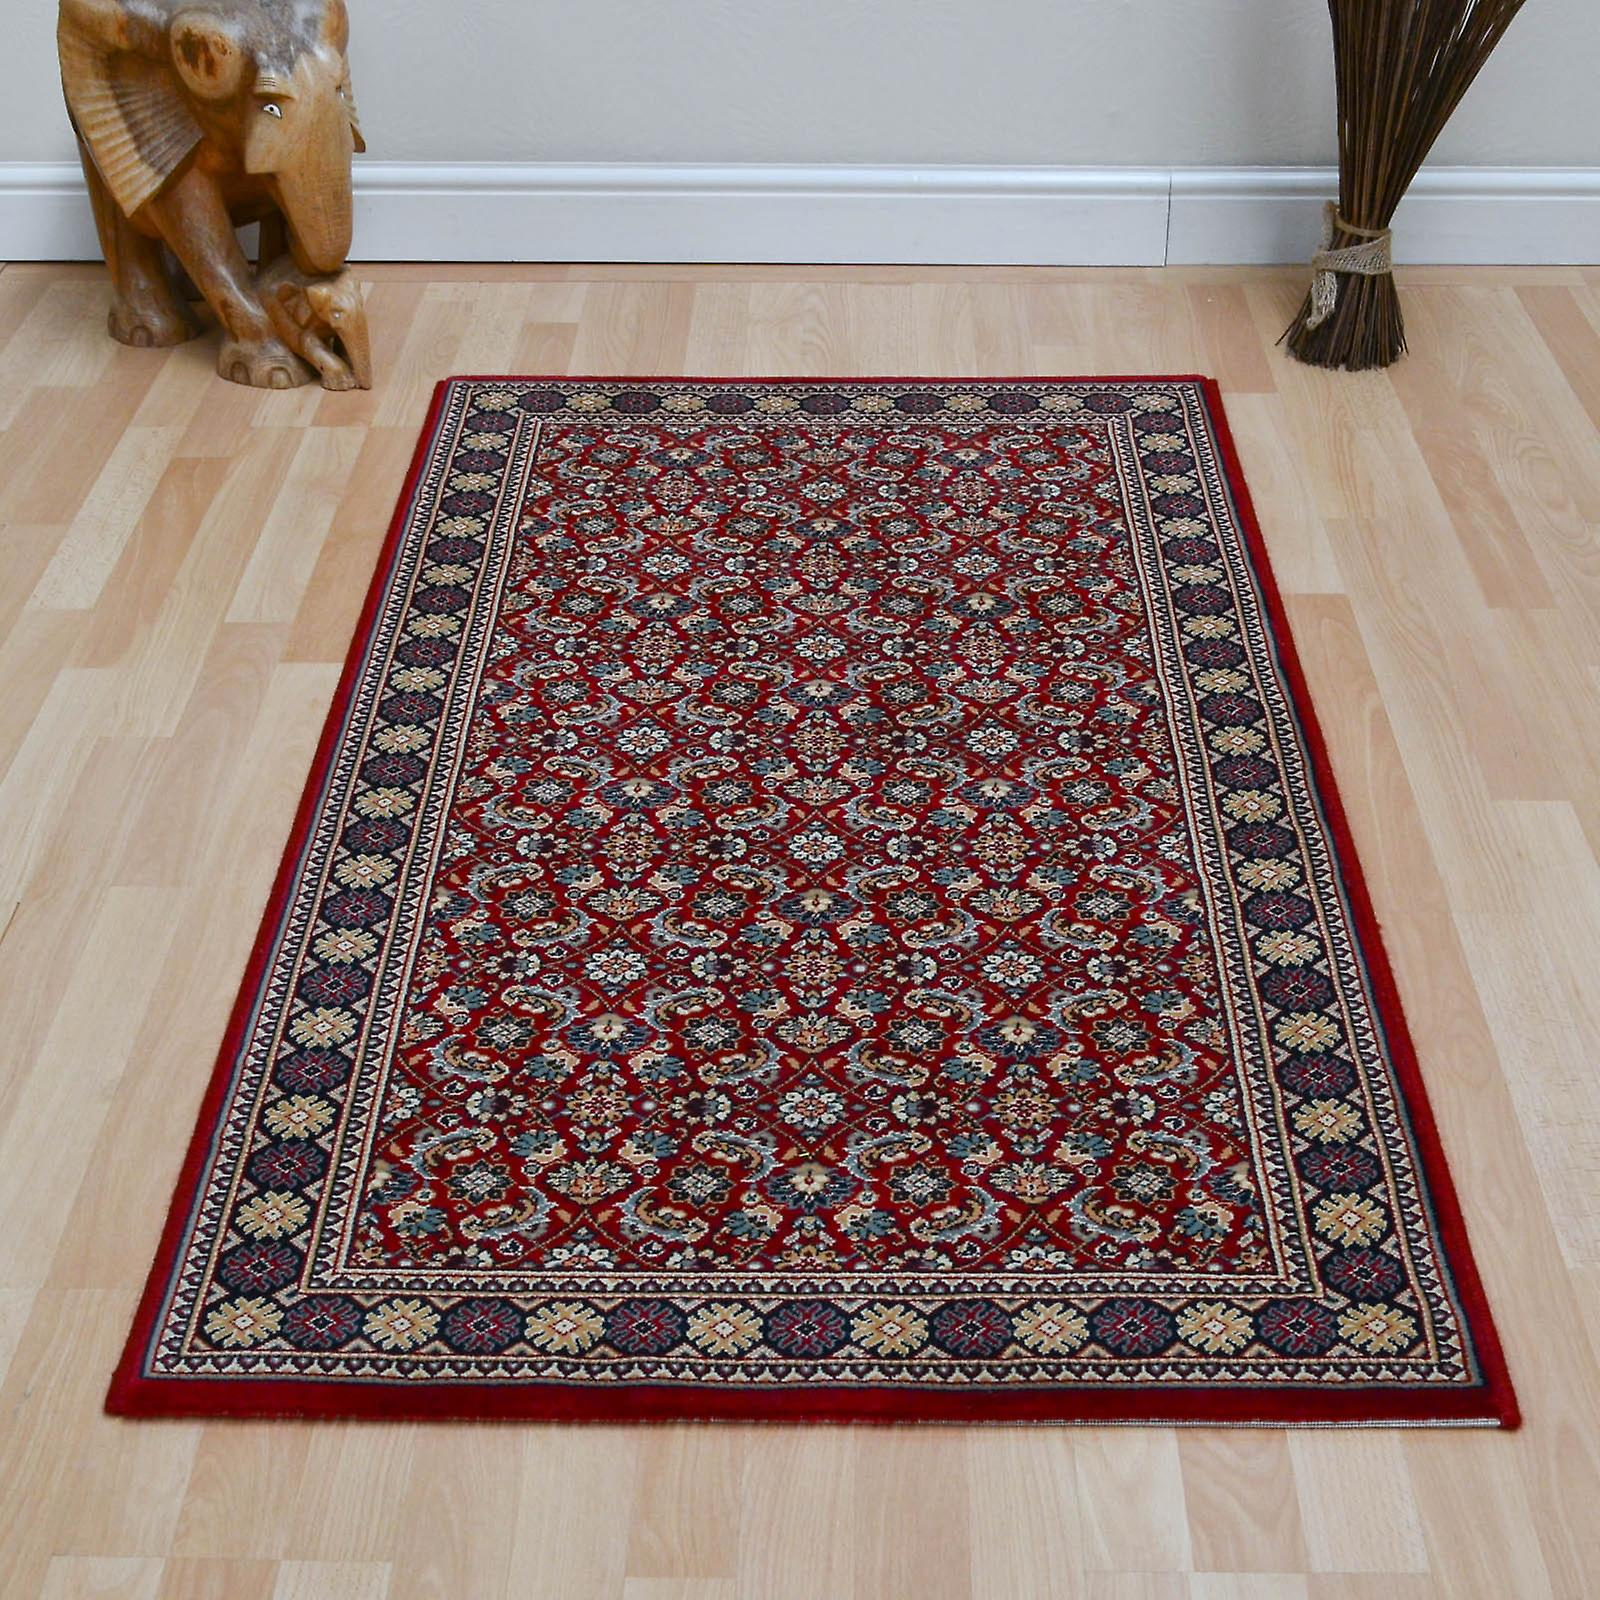 Lano Kasbah Rugs 12176 474 Red